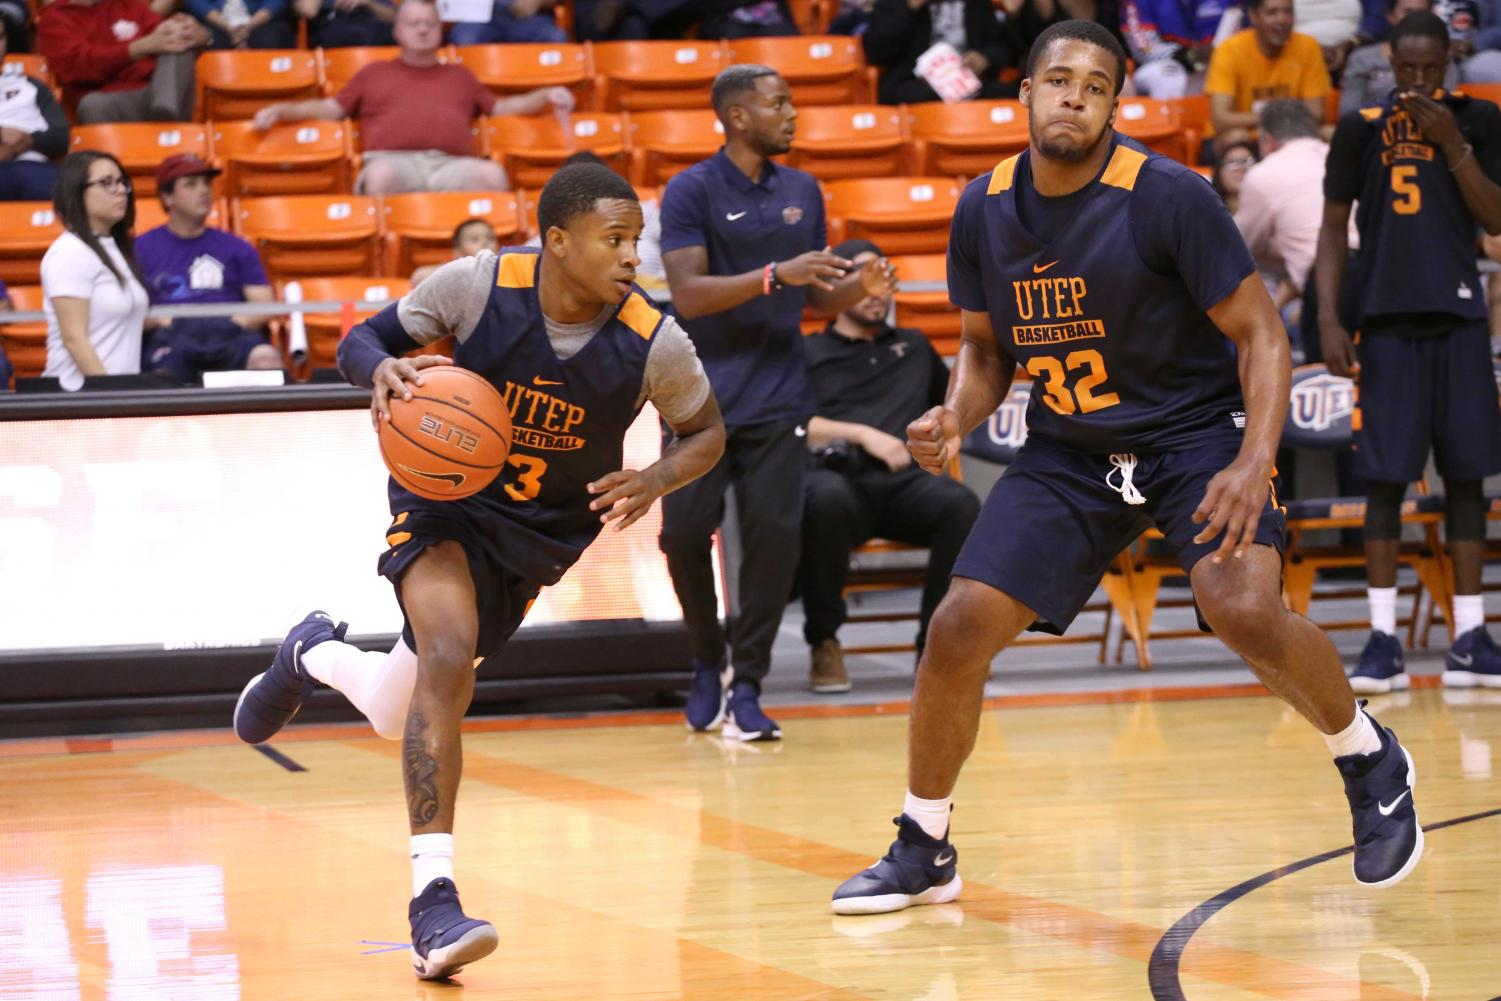 Sophomore+guard+Evan+Gilyard+runs+pas+the+defender+during+the+basketball+pre+season+showcase+at+the+Don+Haskins+Center+on+Wednesday%2C+Oct.+10.+